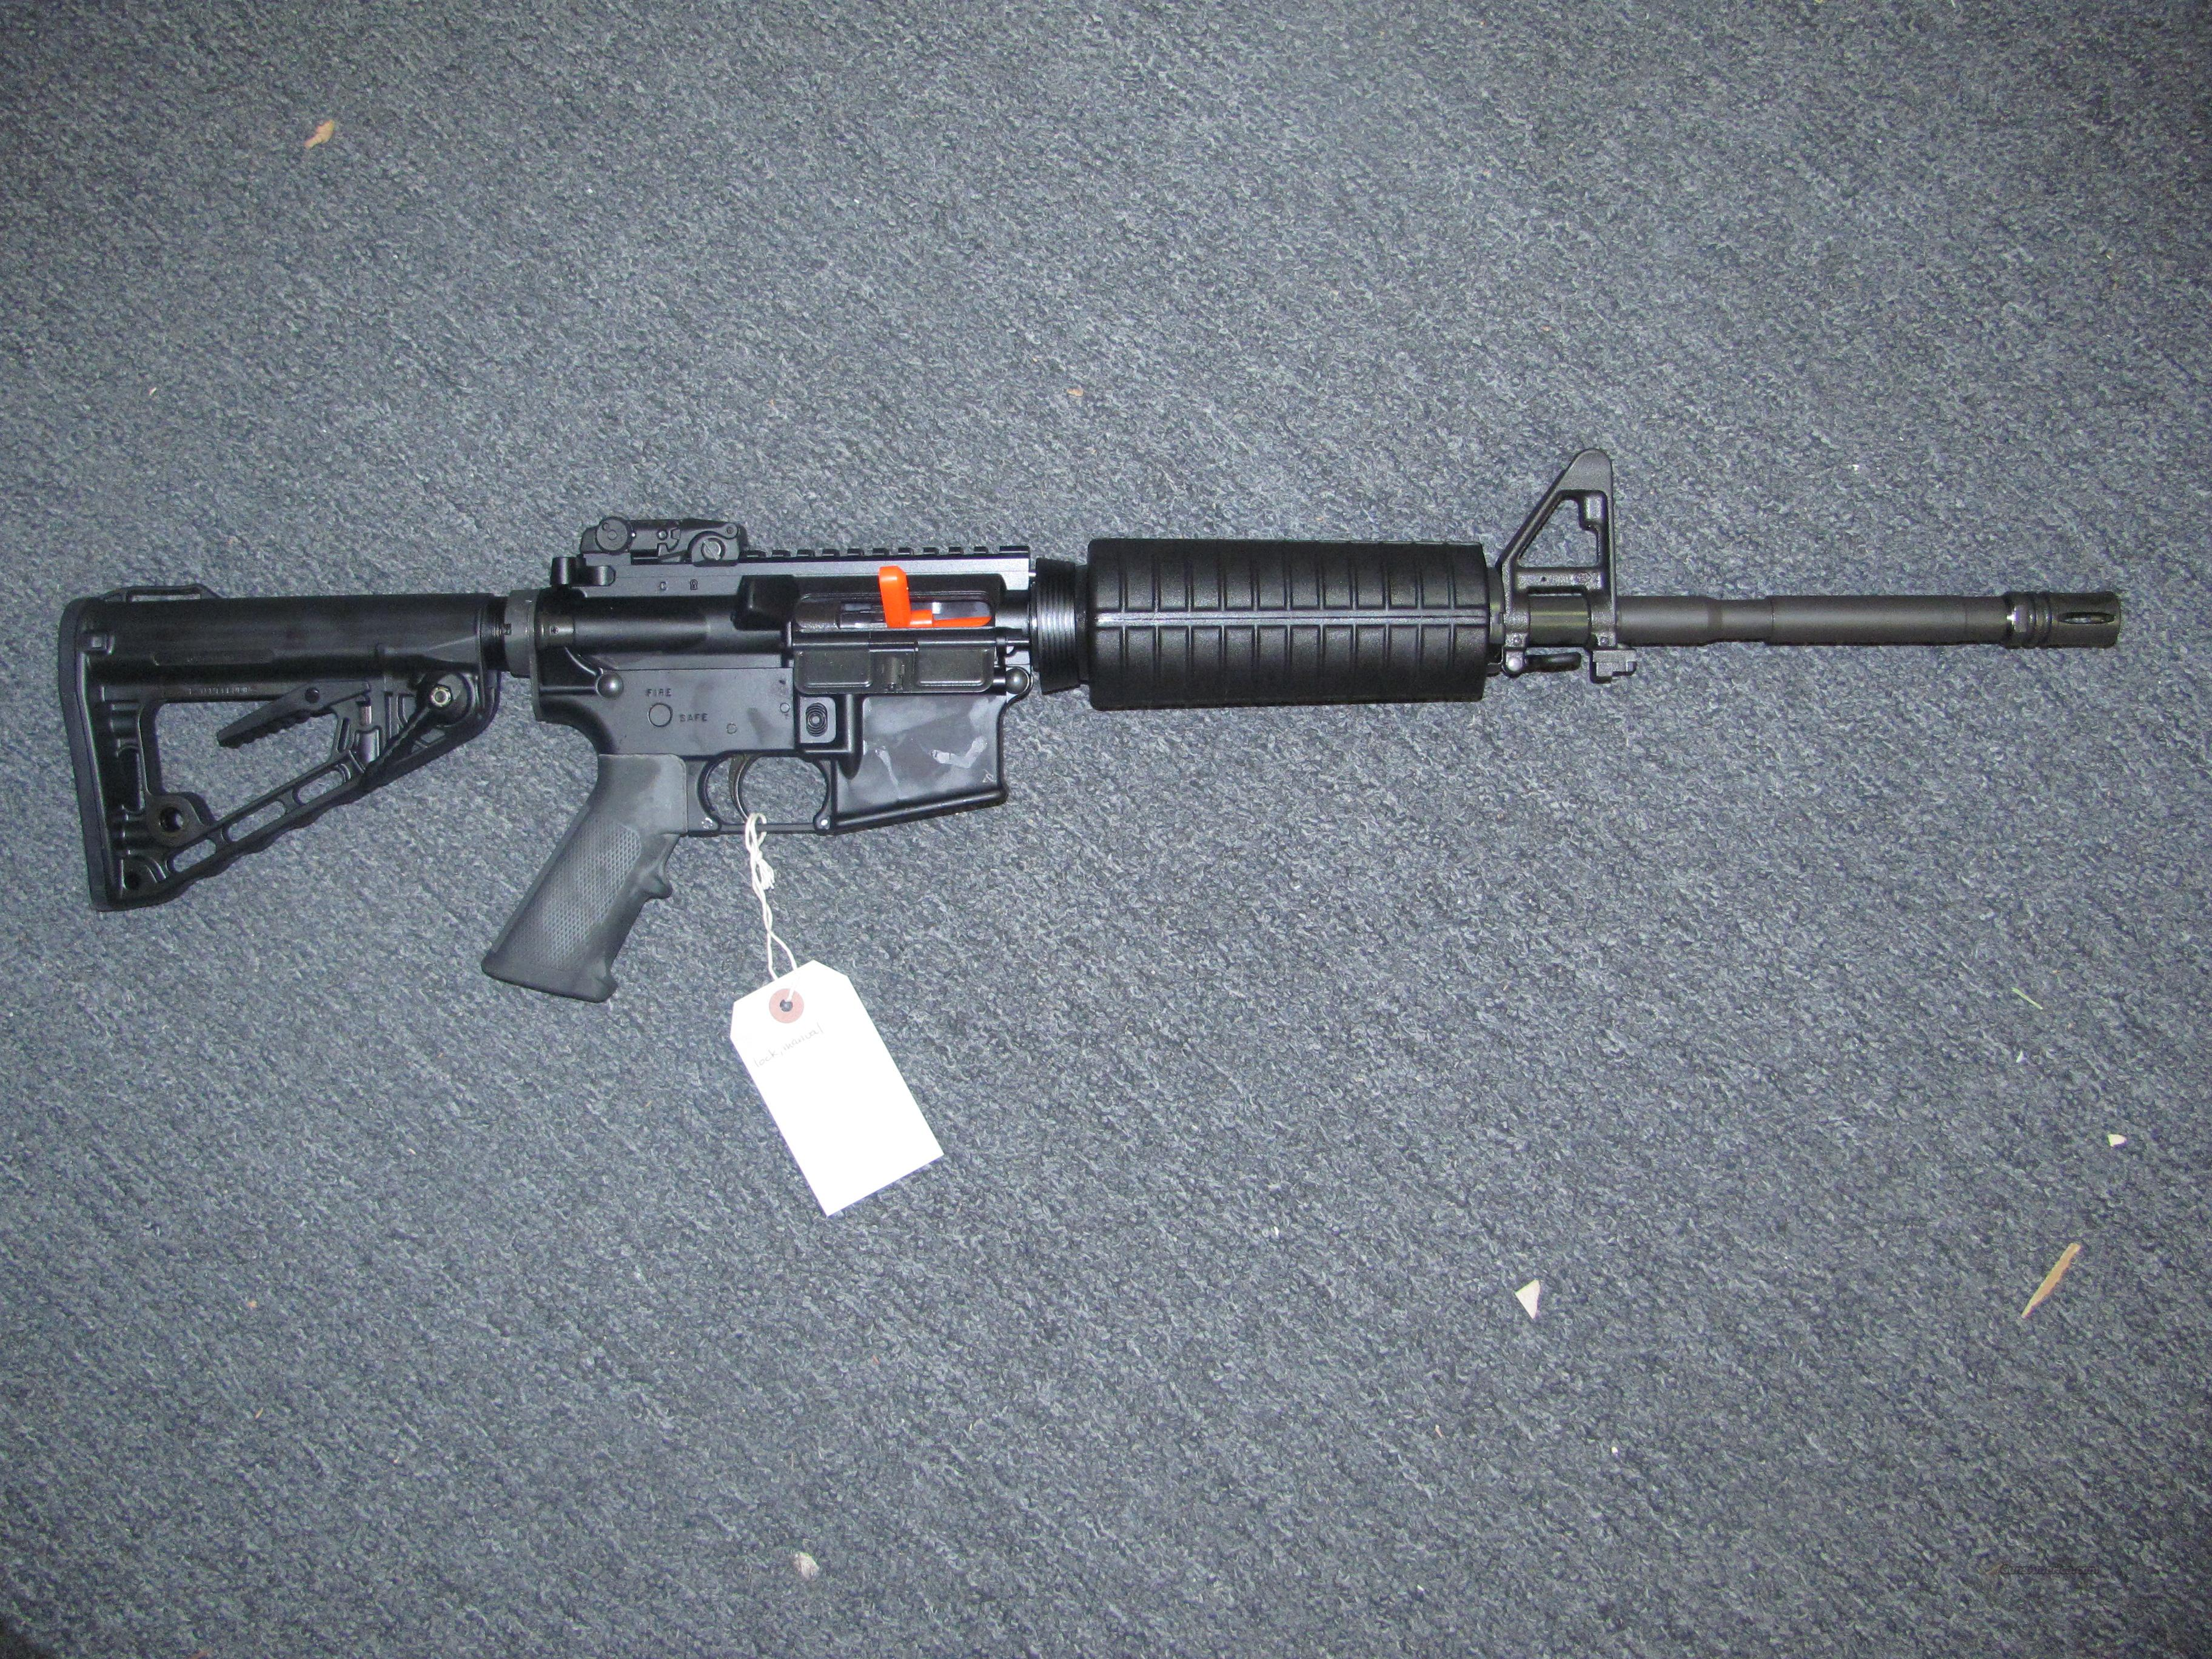 M4 Carbine (LE6920)  Guns > Rifles > Colt Military/Tactical Rifles